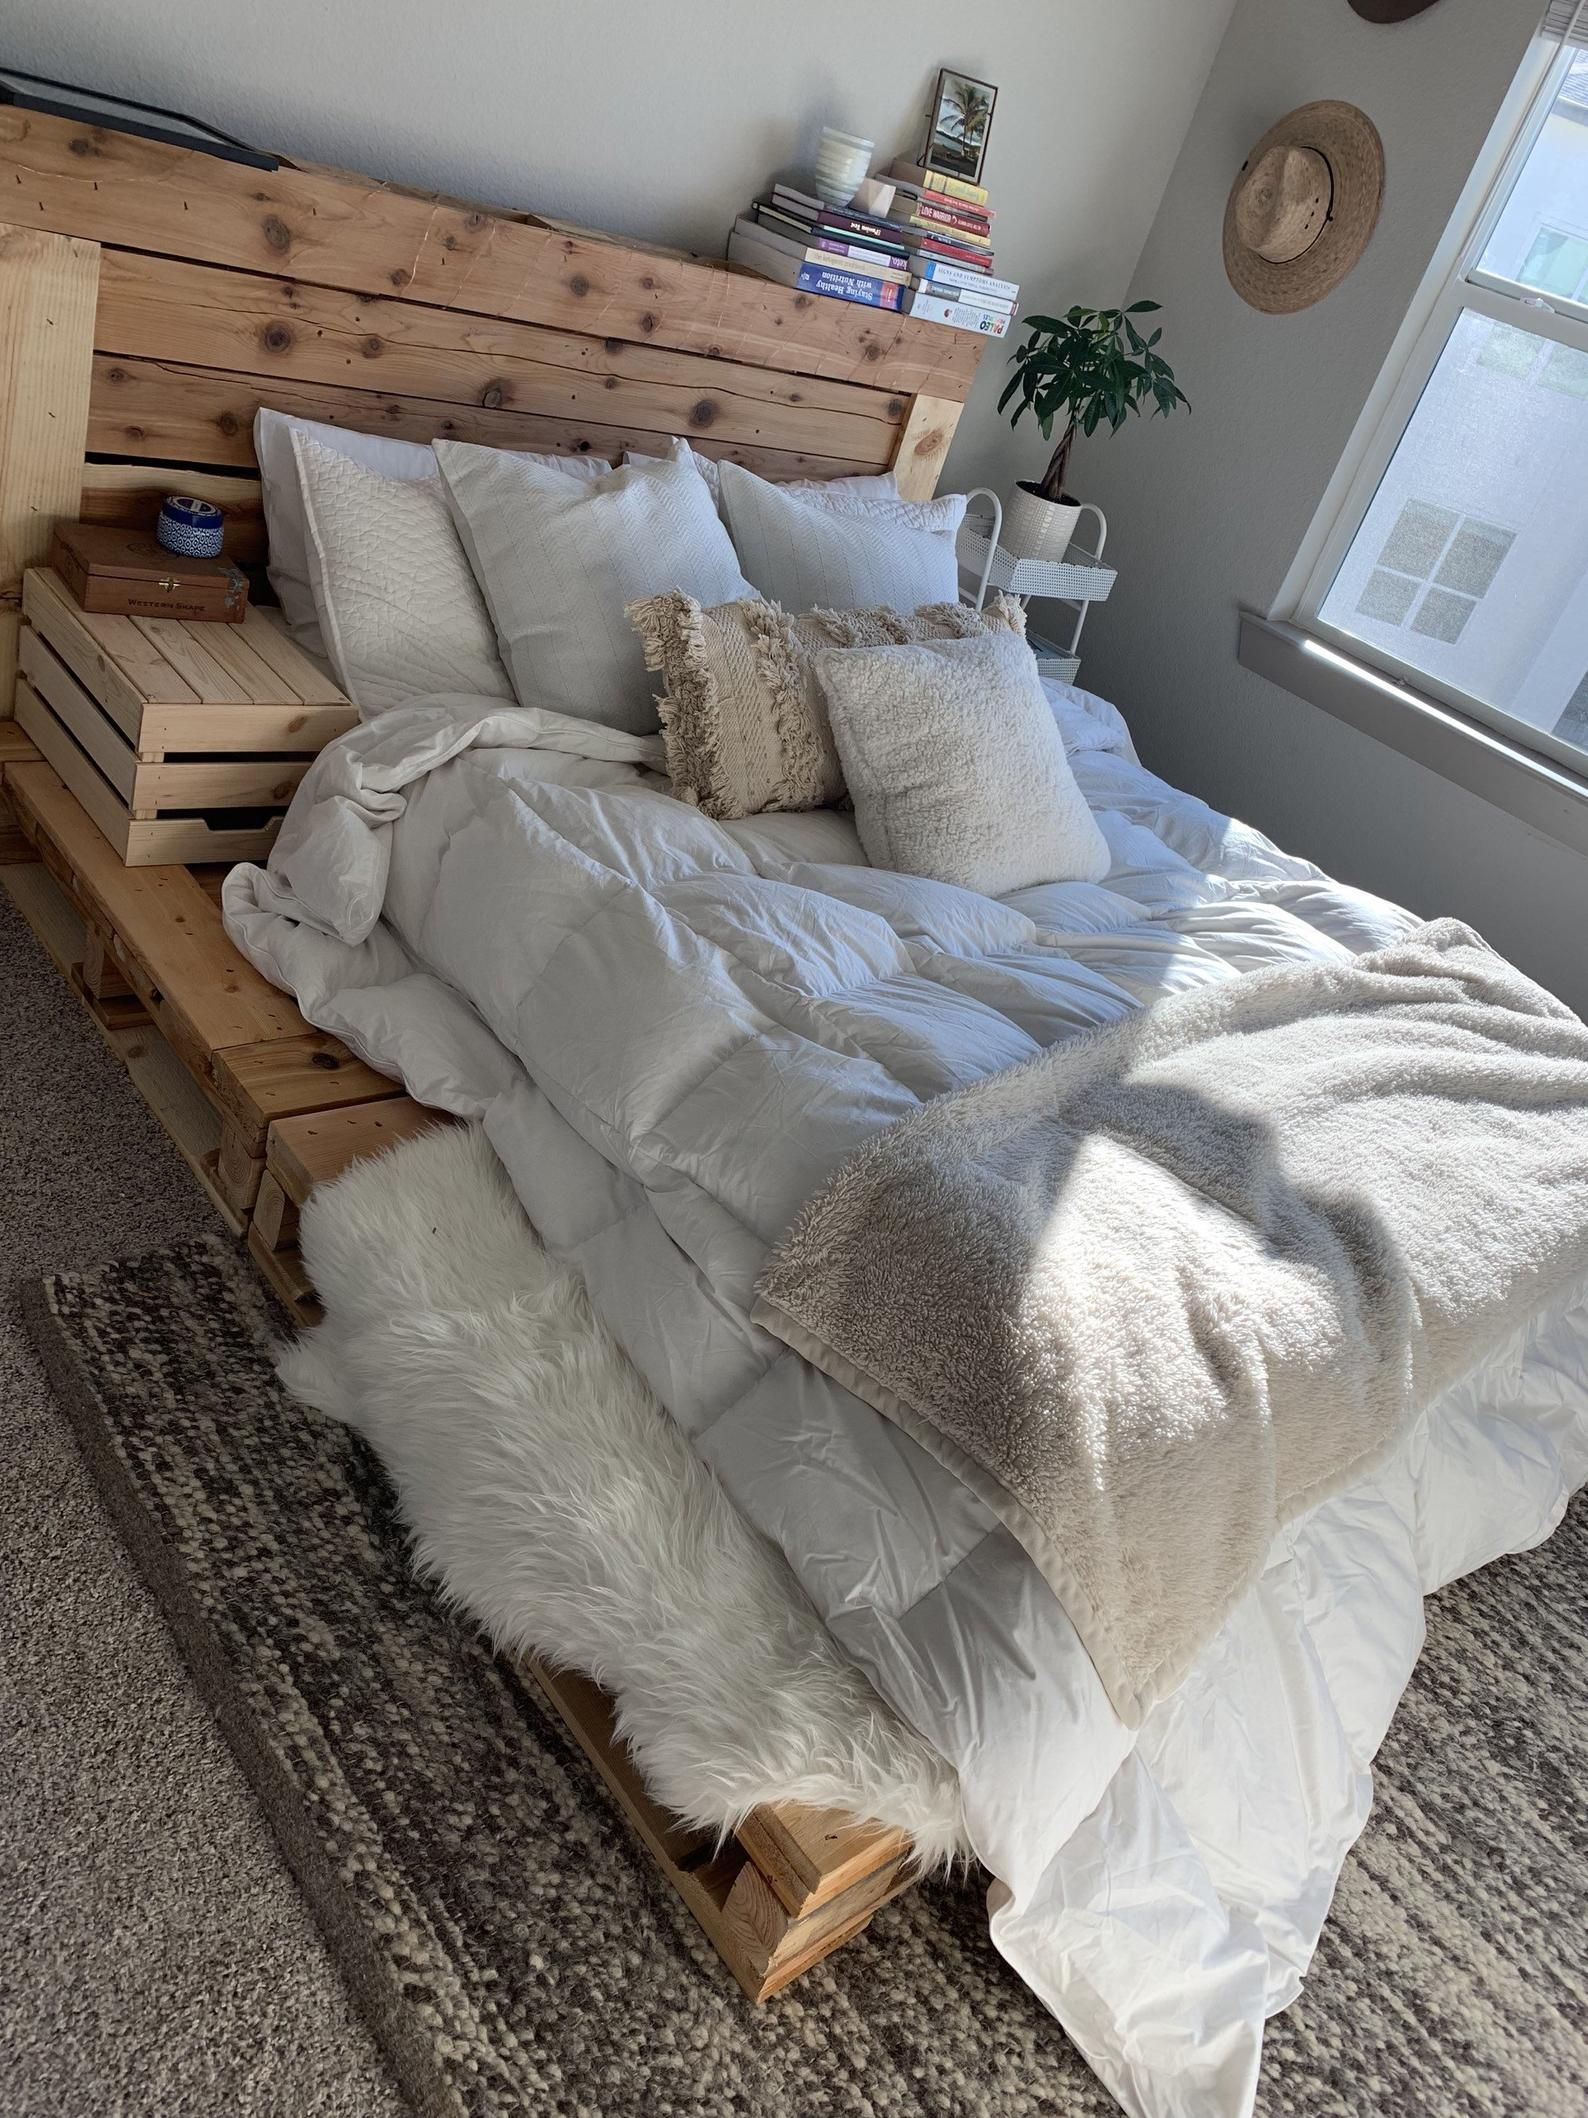 Pallet Bed The Oversized Queen Includes Headboard And Platform Pallet Platform Bed Pallet Bed Frame Bedroom Decor